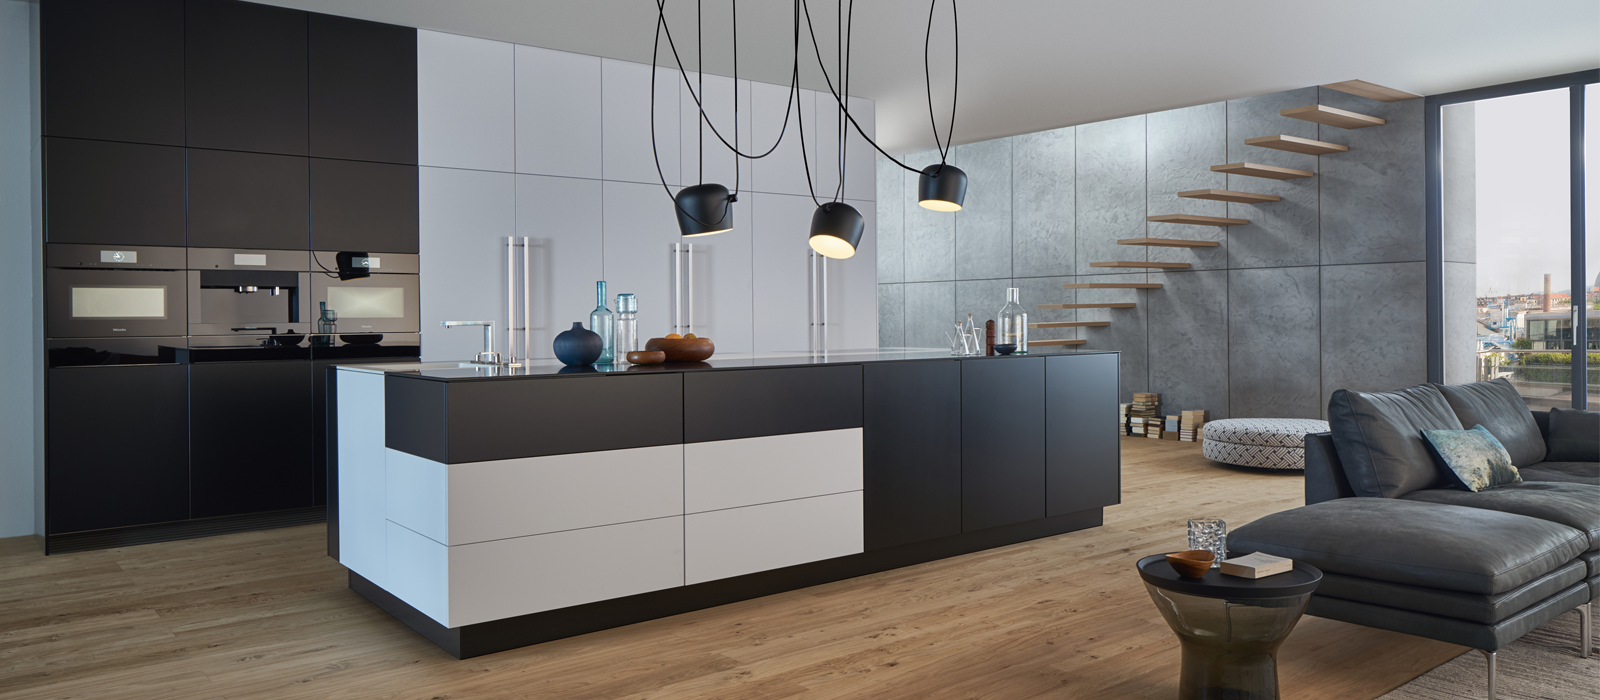 Leading NYC Modern European Kitchen Provider | Kitchen Cabinets   Leicht  New York